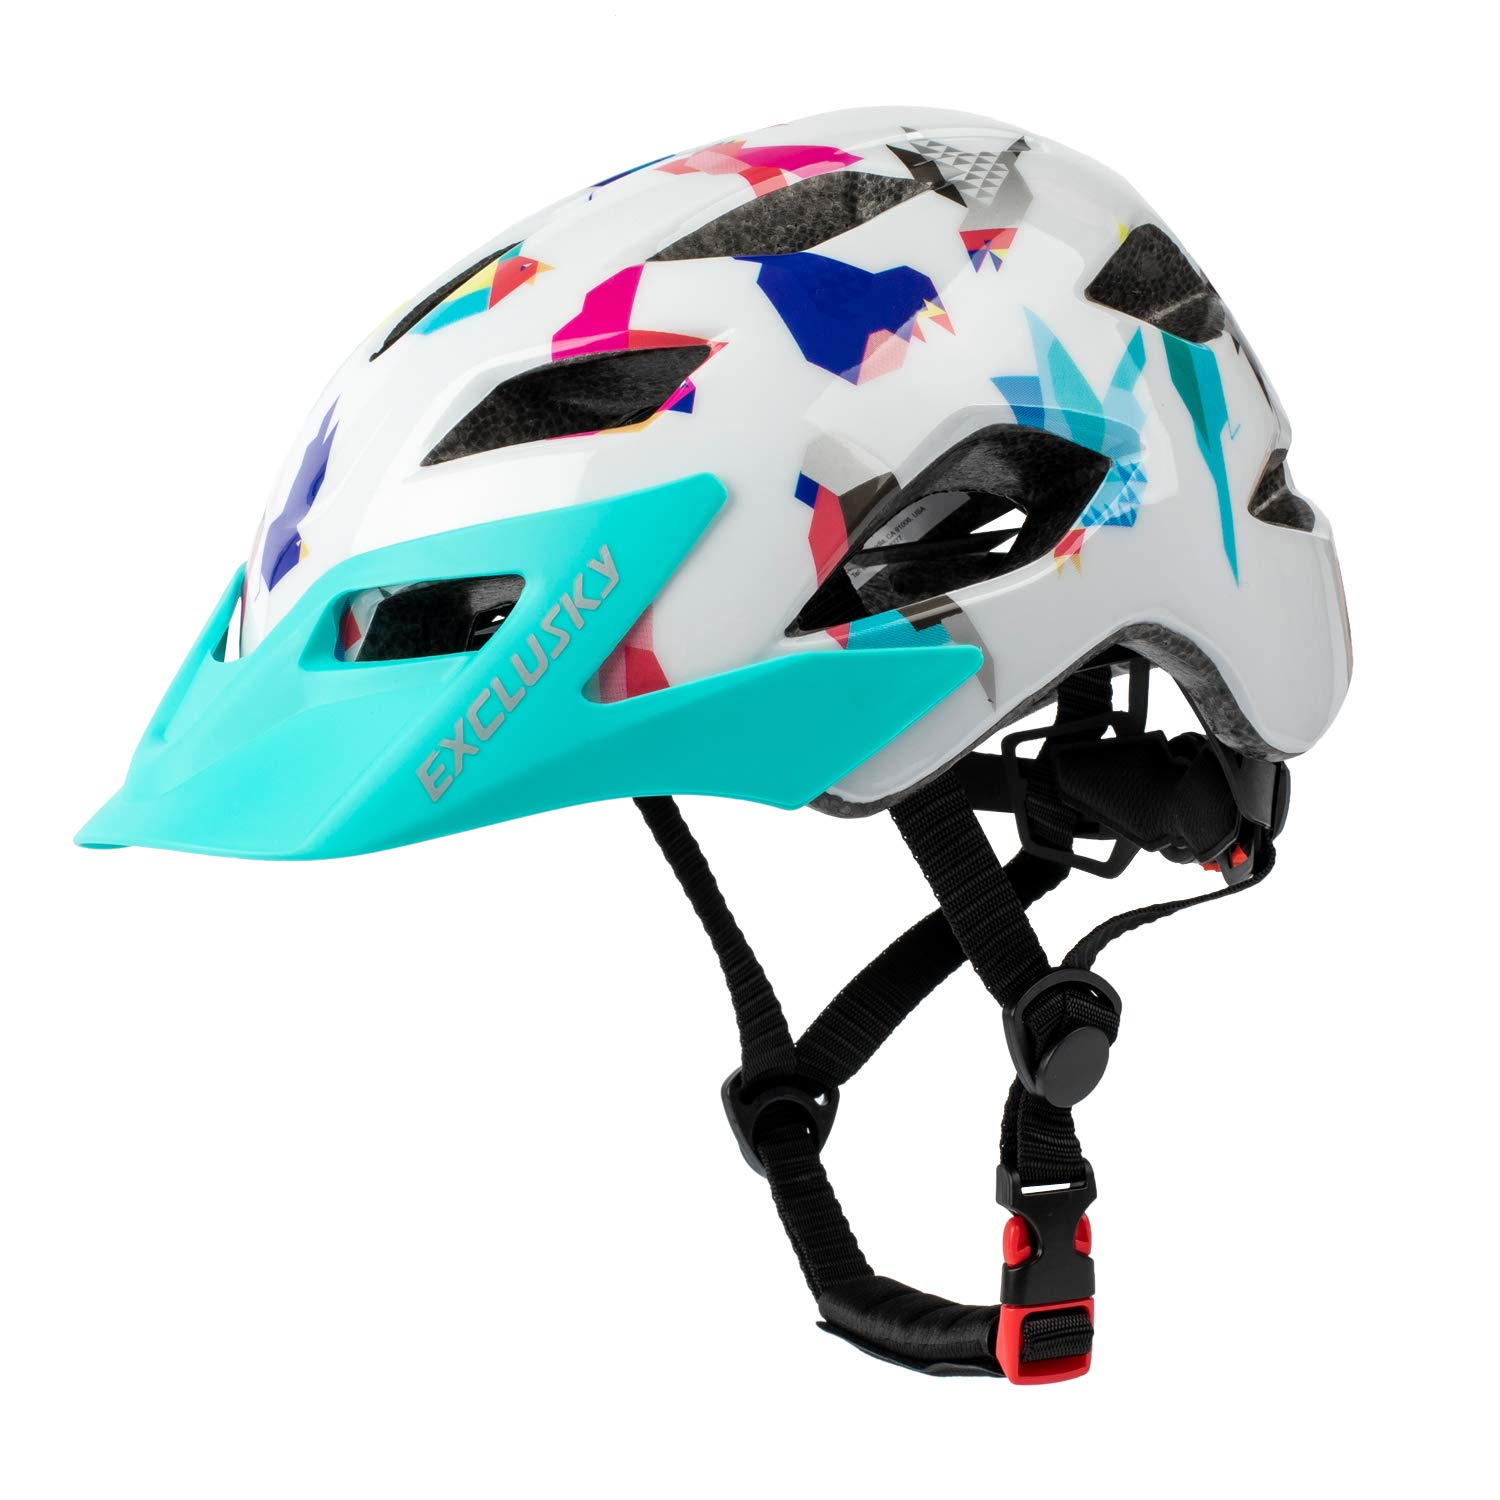 Exclusky Kids Bike Helmets, Lightweight Bicycle Cycling Helmet, Adjustable  Scooter Helmet for Boys Girls 50-57cm(Ages 5-13): Amazon.in: Sports,  Fitness & Outdoors